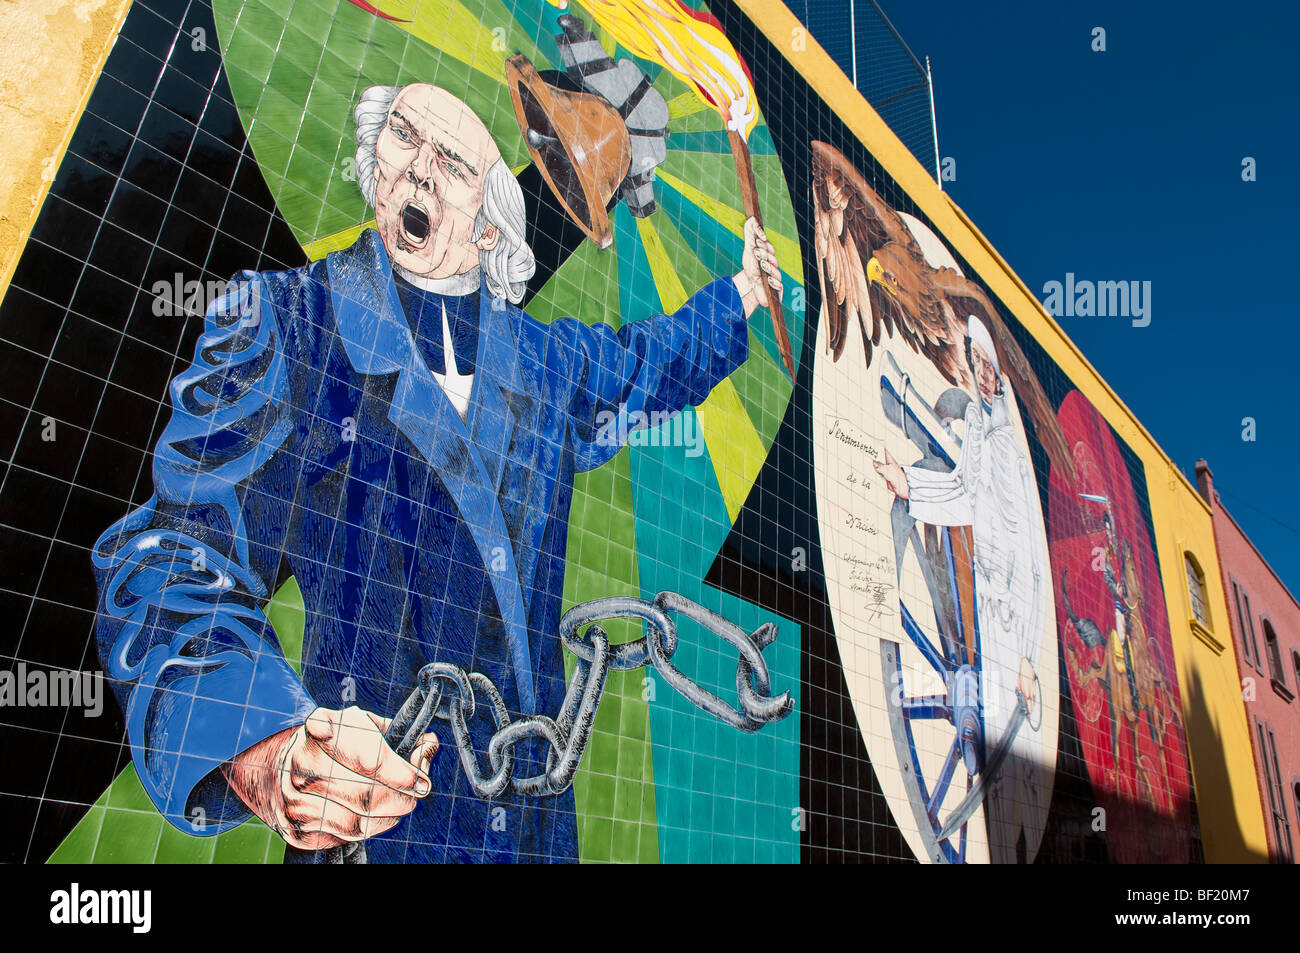 Ceramic tile mural depicting father hidalgo calling for the ceramic tile mural depicting father hidalgo calling for the mexican revolution dolores hidalgo guanajuato mexico doublecrazyfo Images